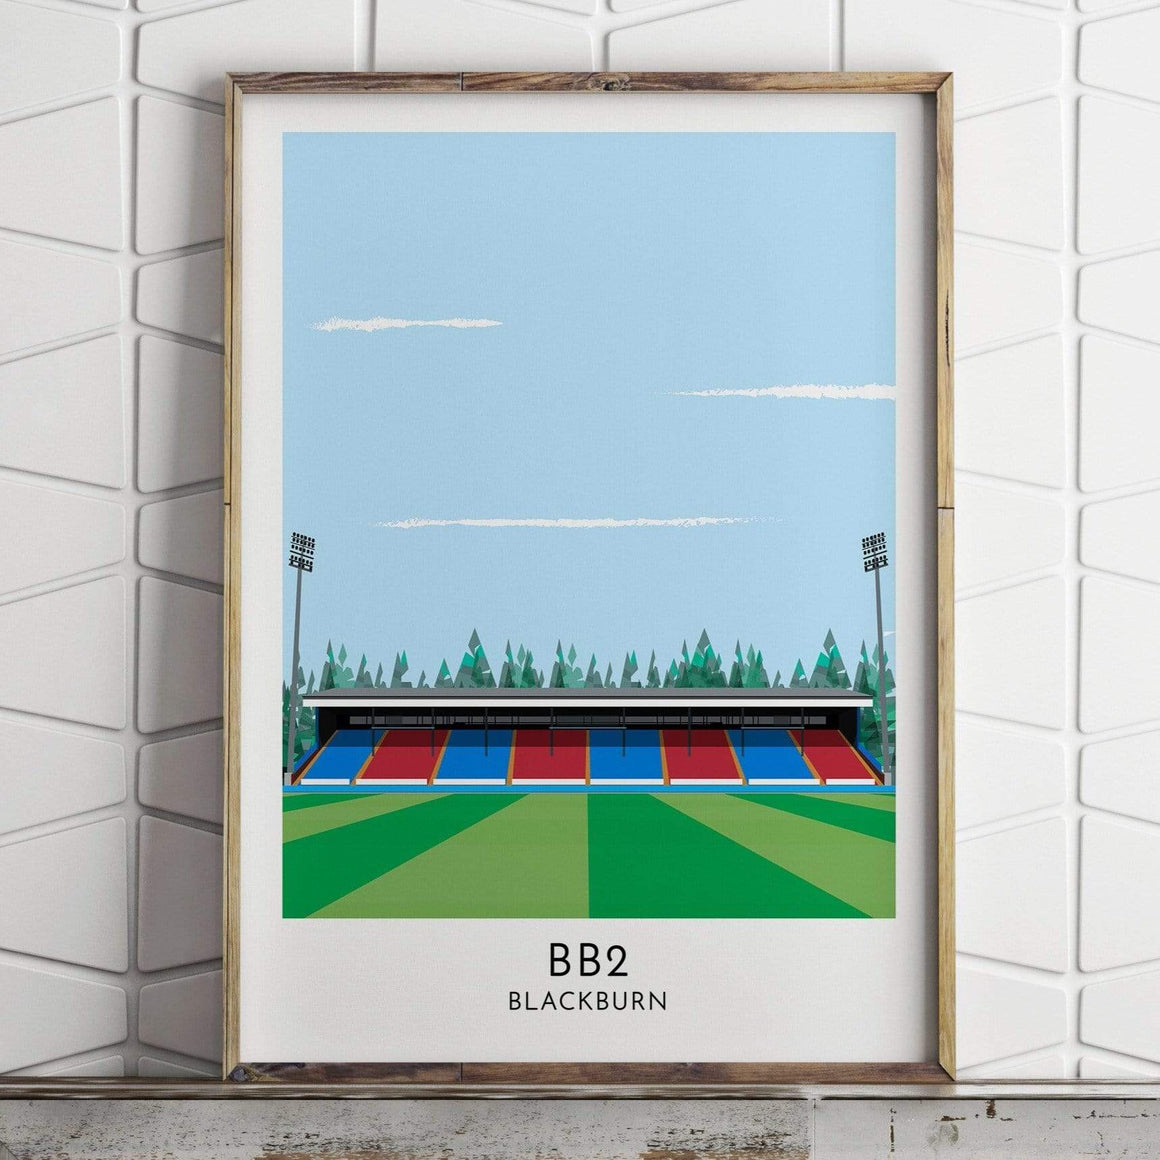 Turf Football Art Blackburn Rovers - Ewood Park - Contemporary Stadium Print